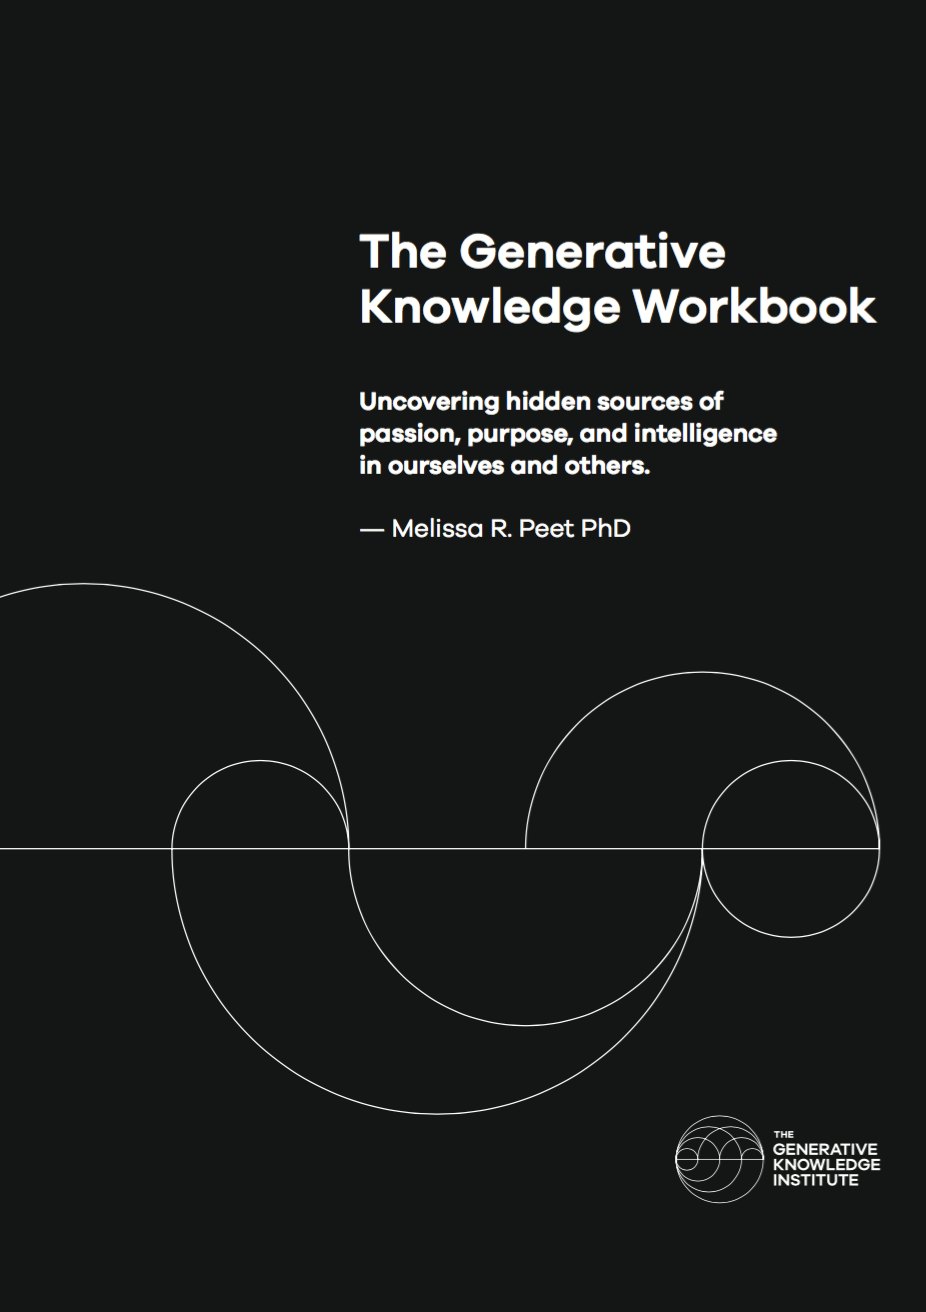 GKI Cover workbook.png